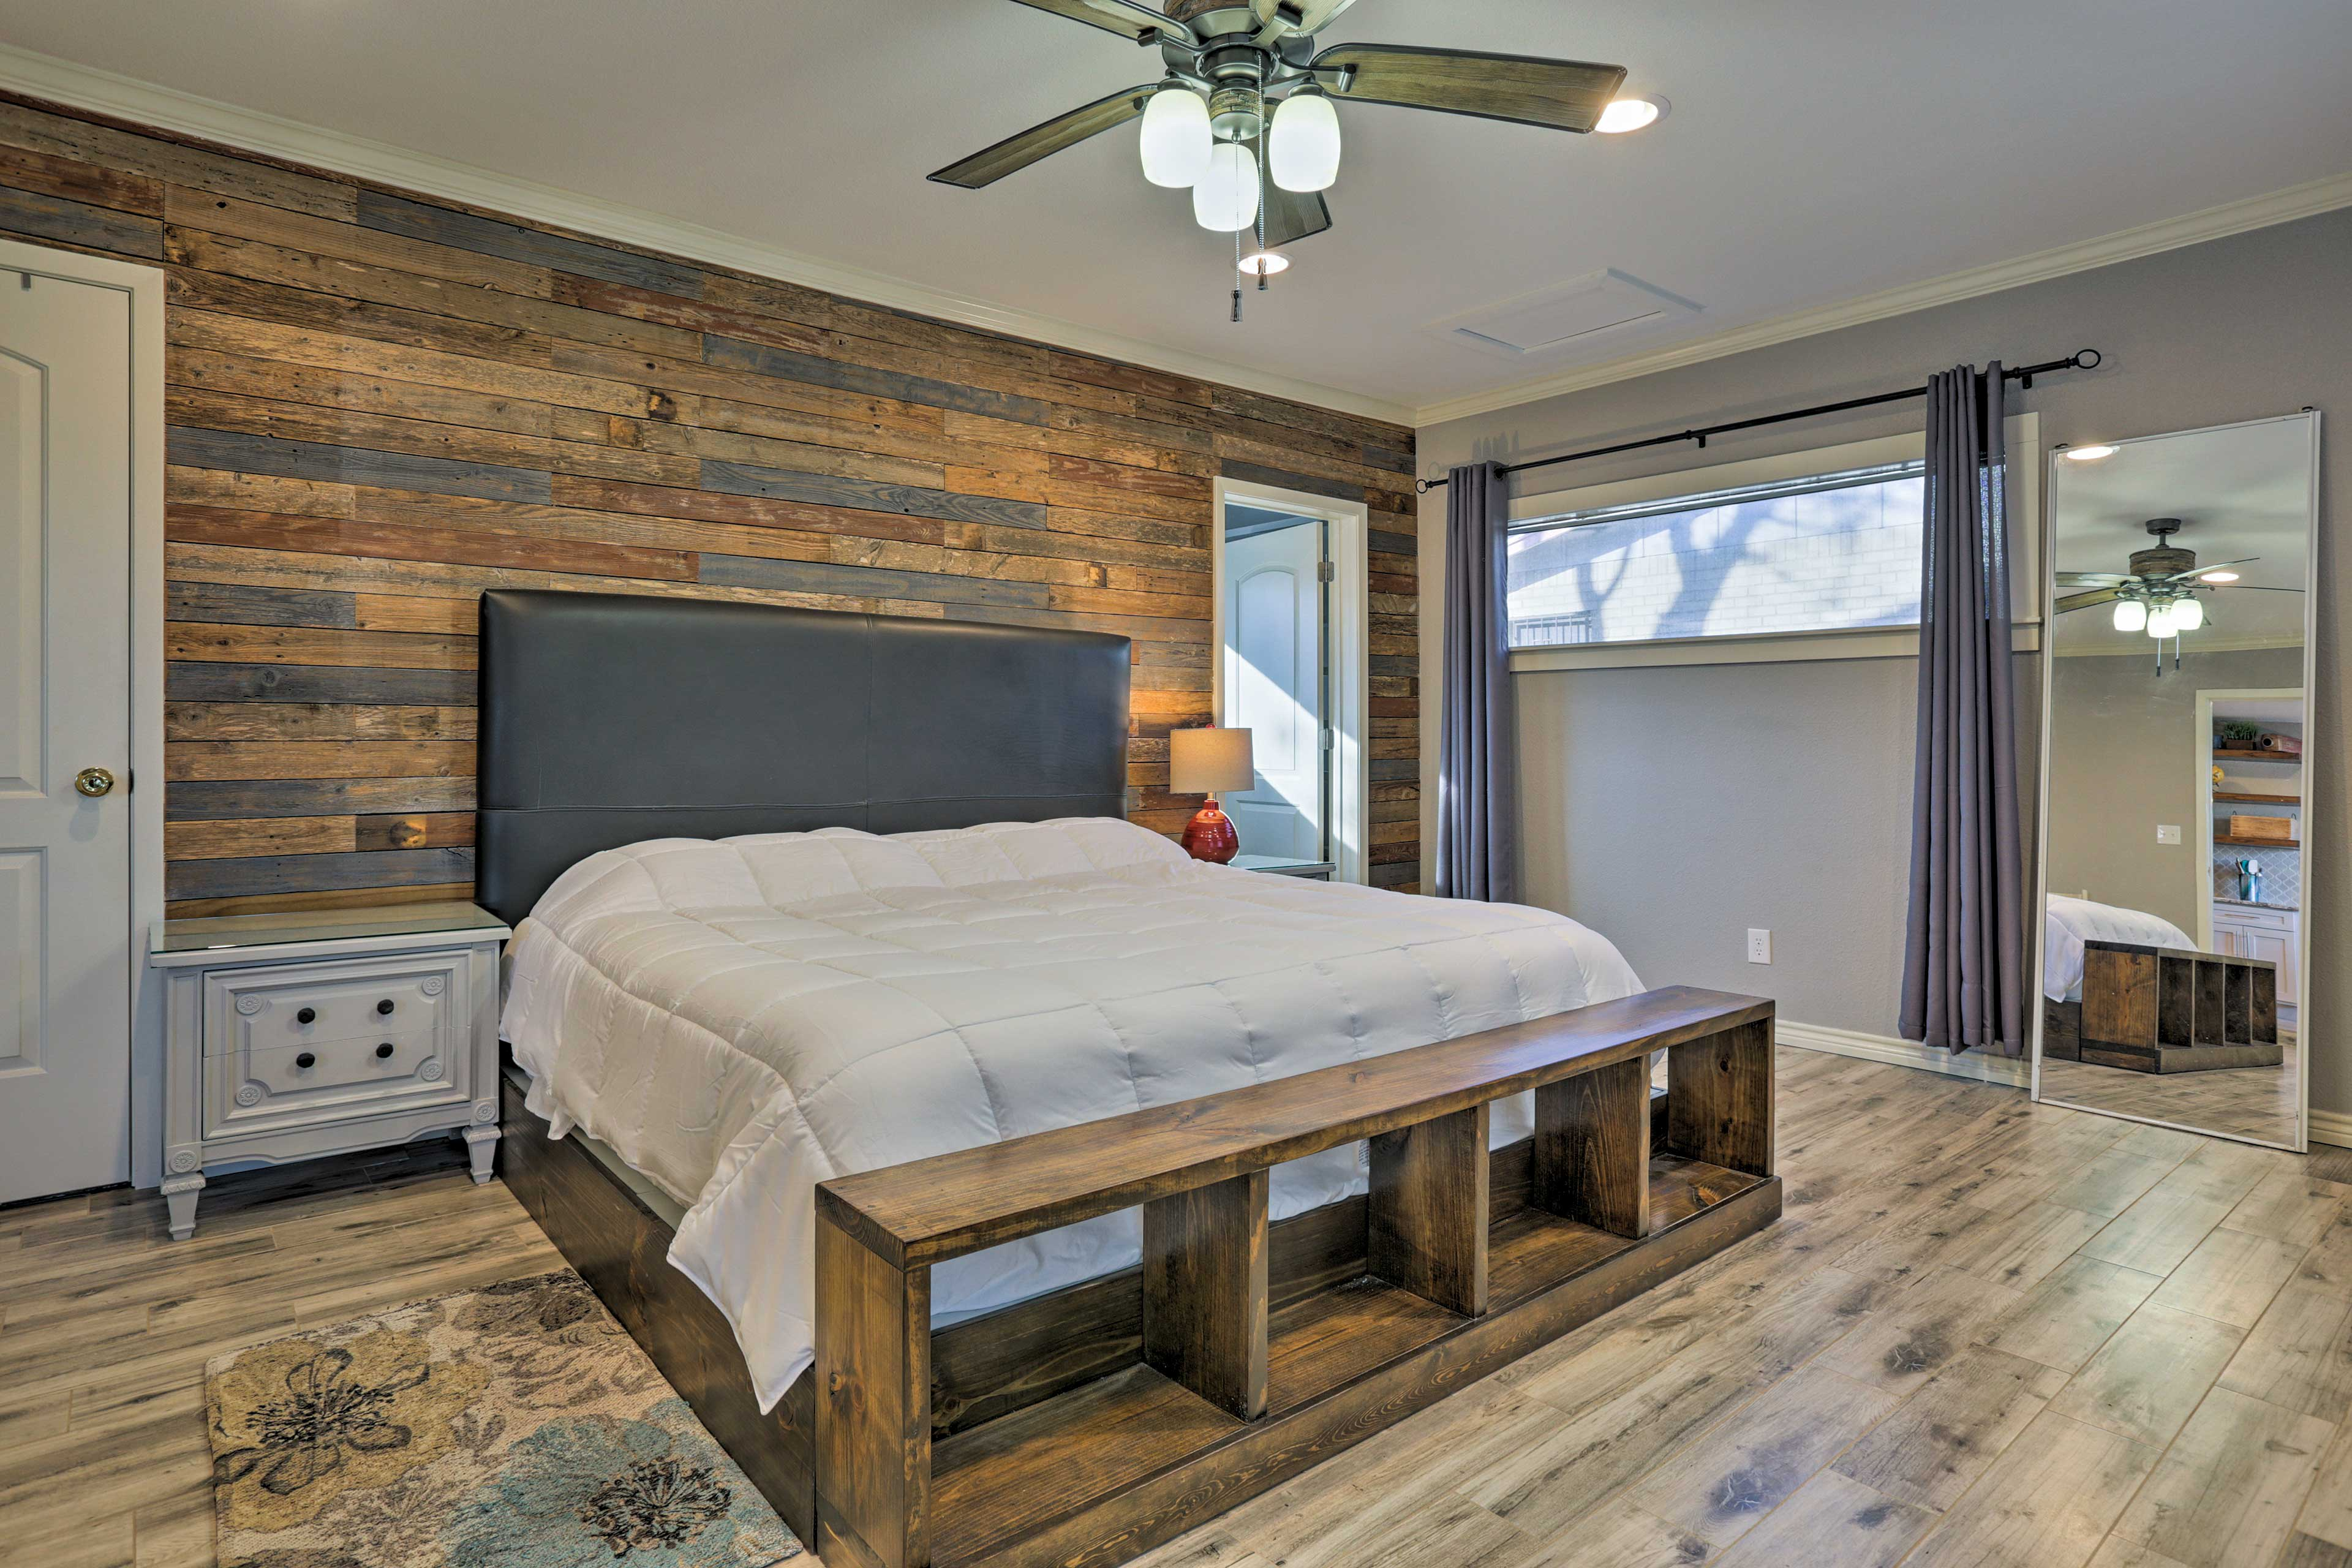 The master bedroom is backdropped by a refurbished barnwood wall.